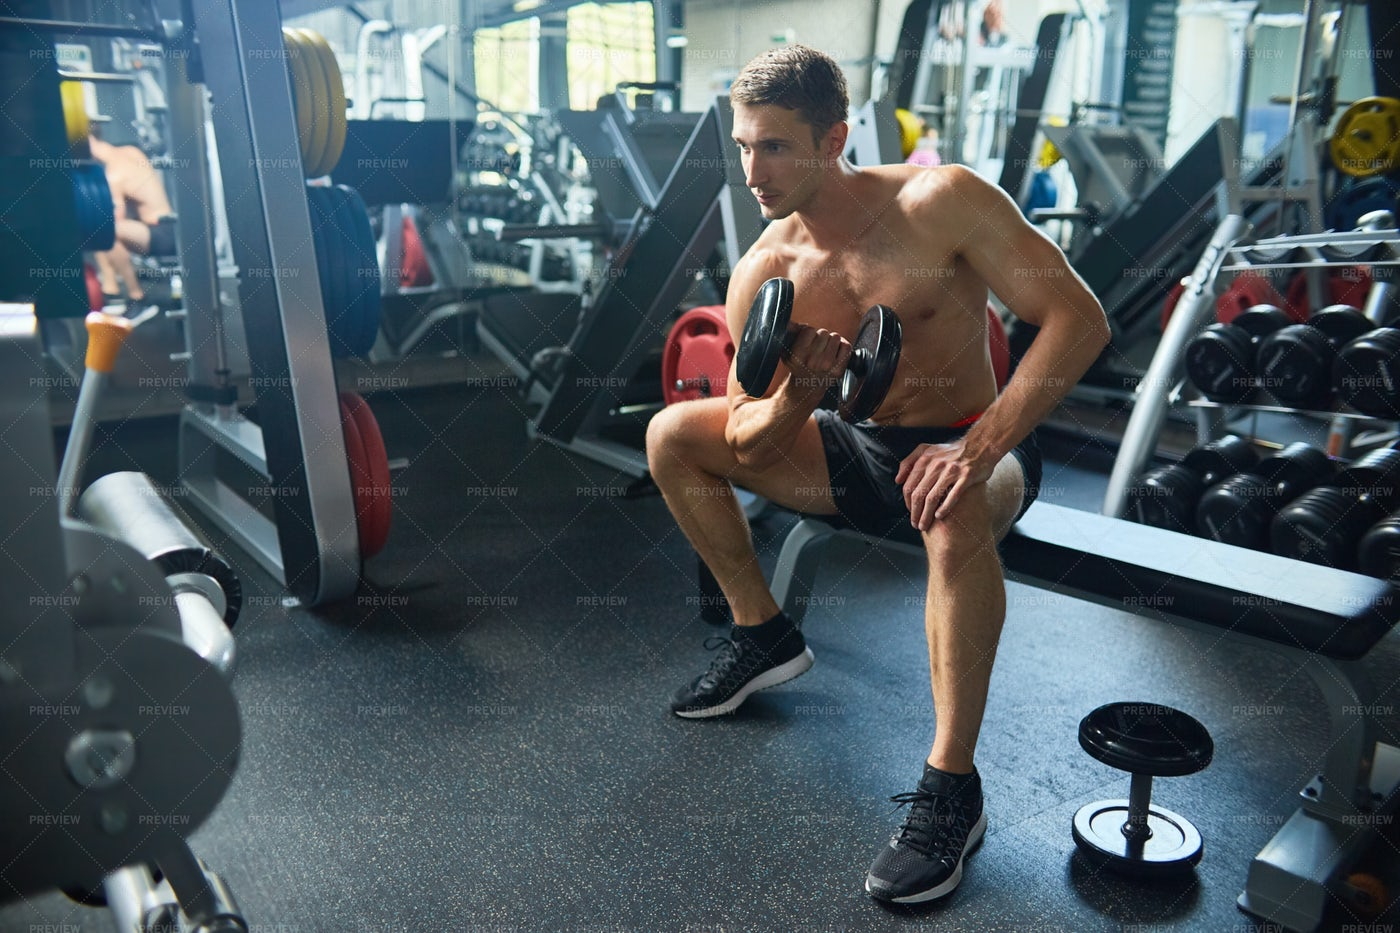 Handsome Man Working Out In Gym: Stock Photos